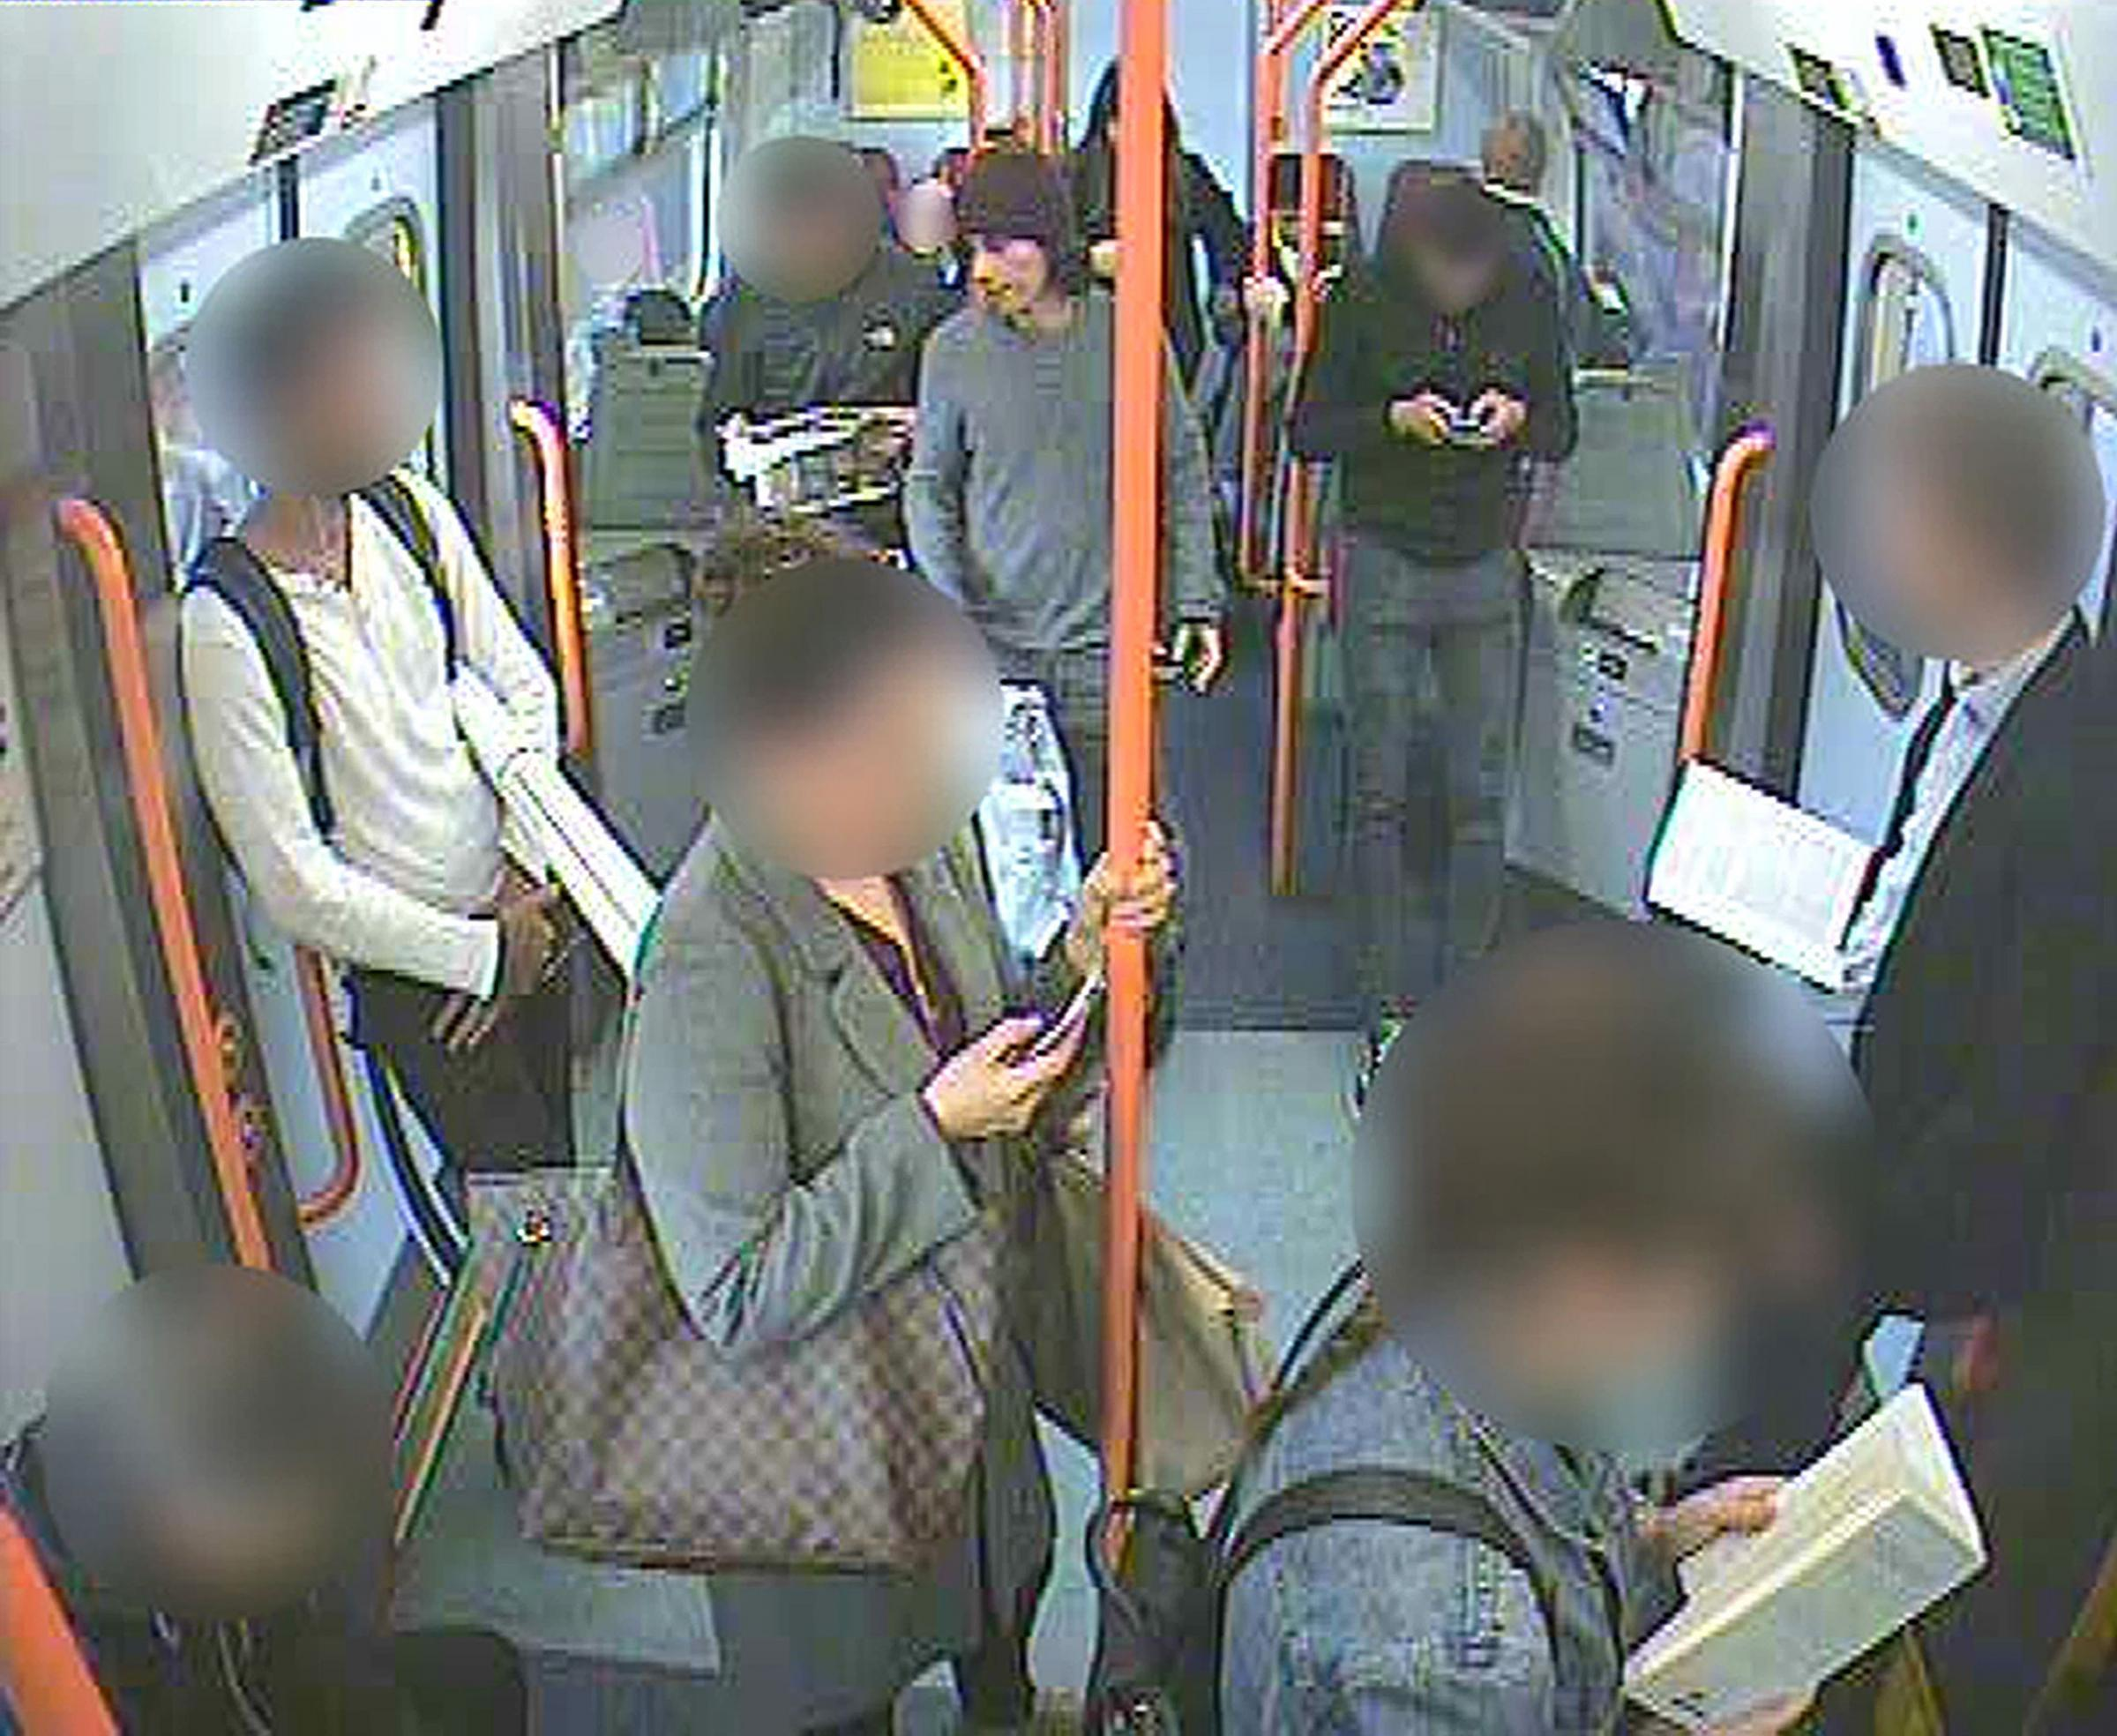 London tube train bomber Ahmed Hassan sentenced to life in prison